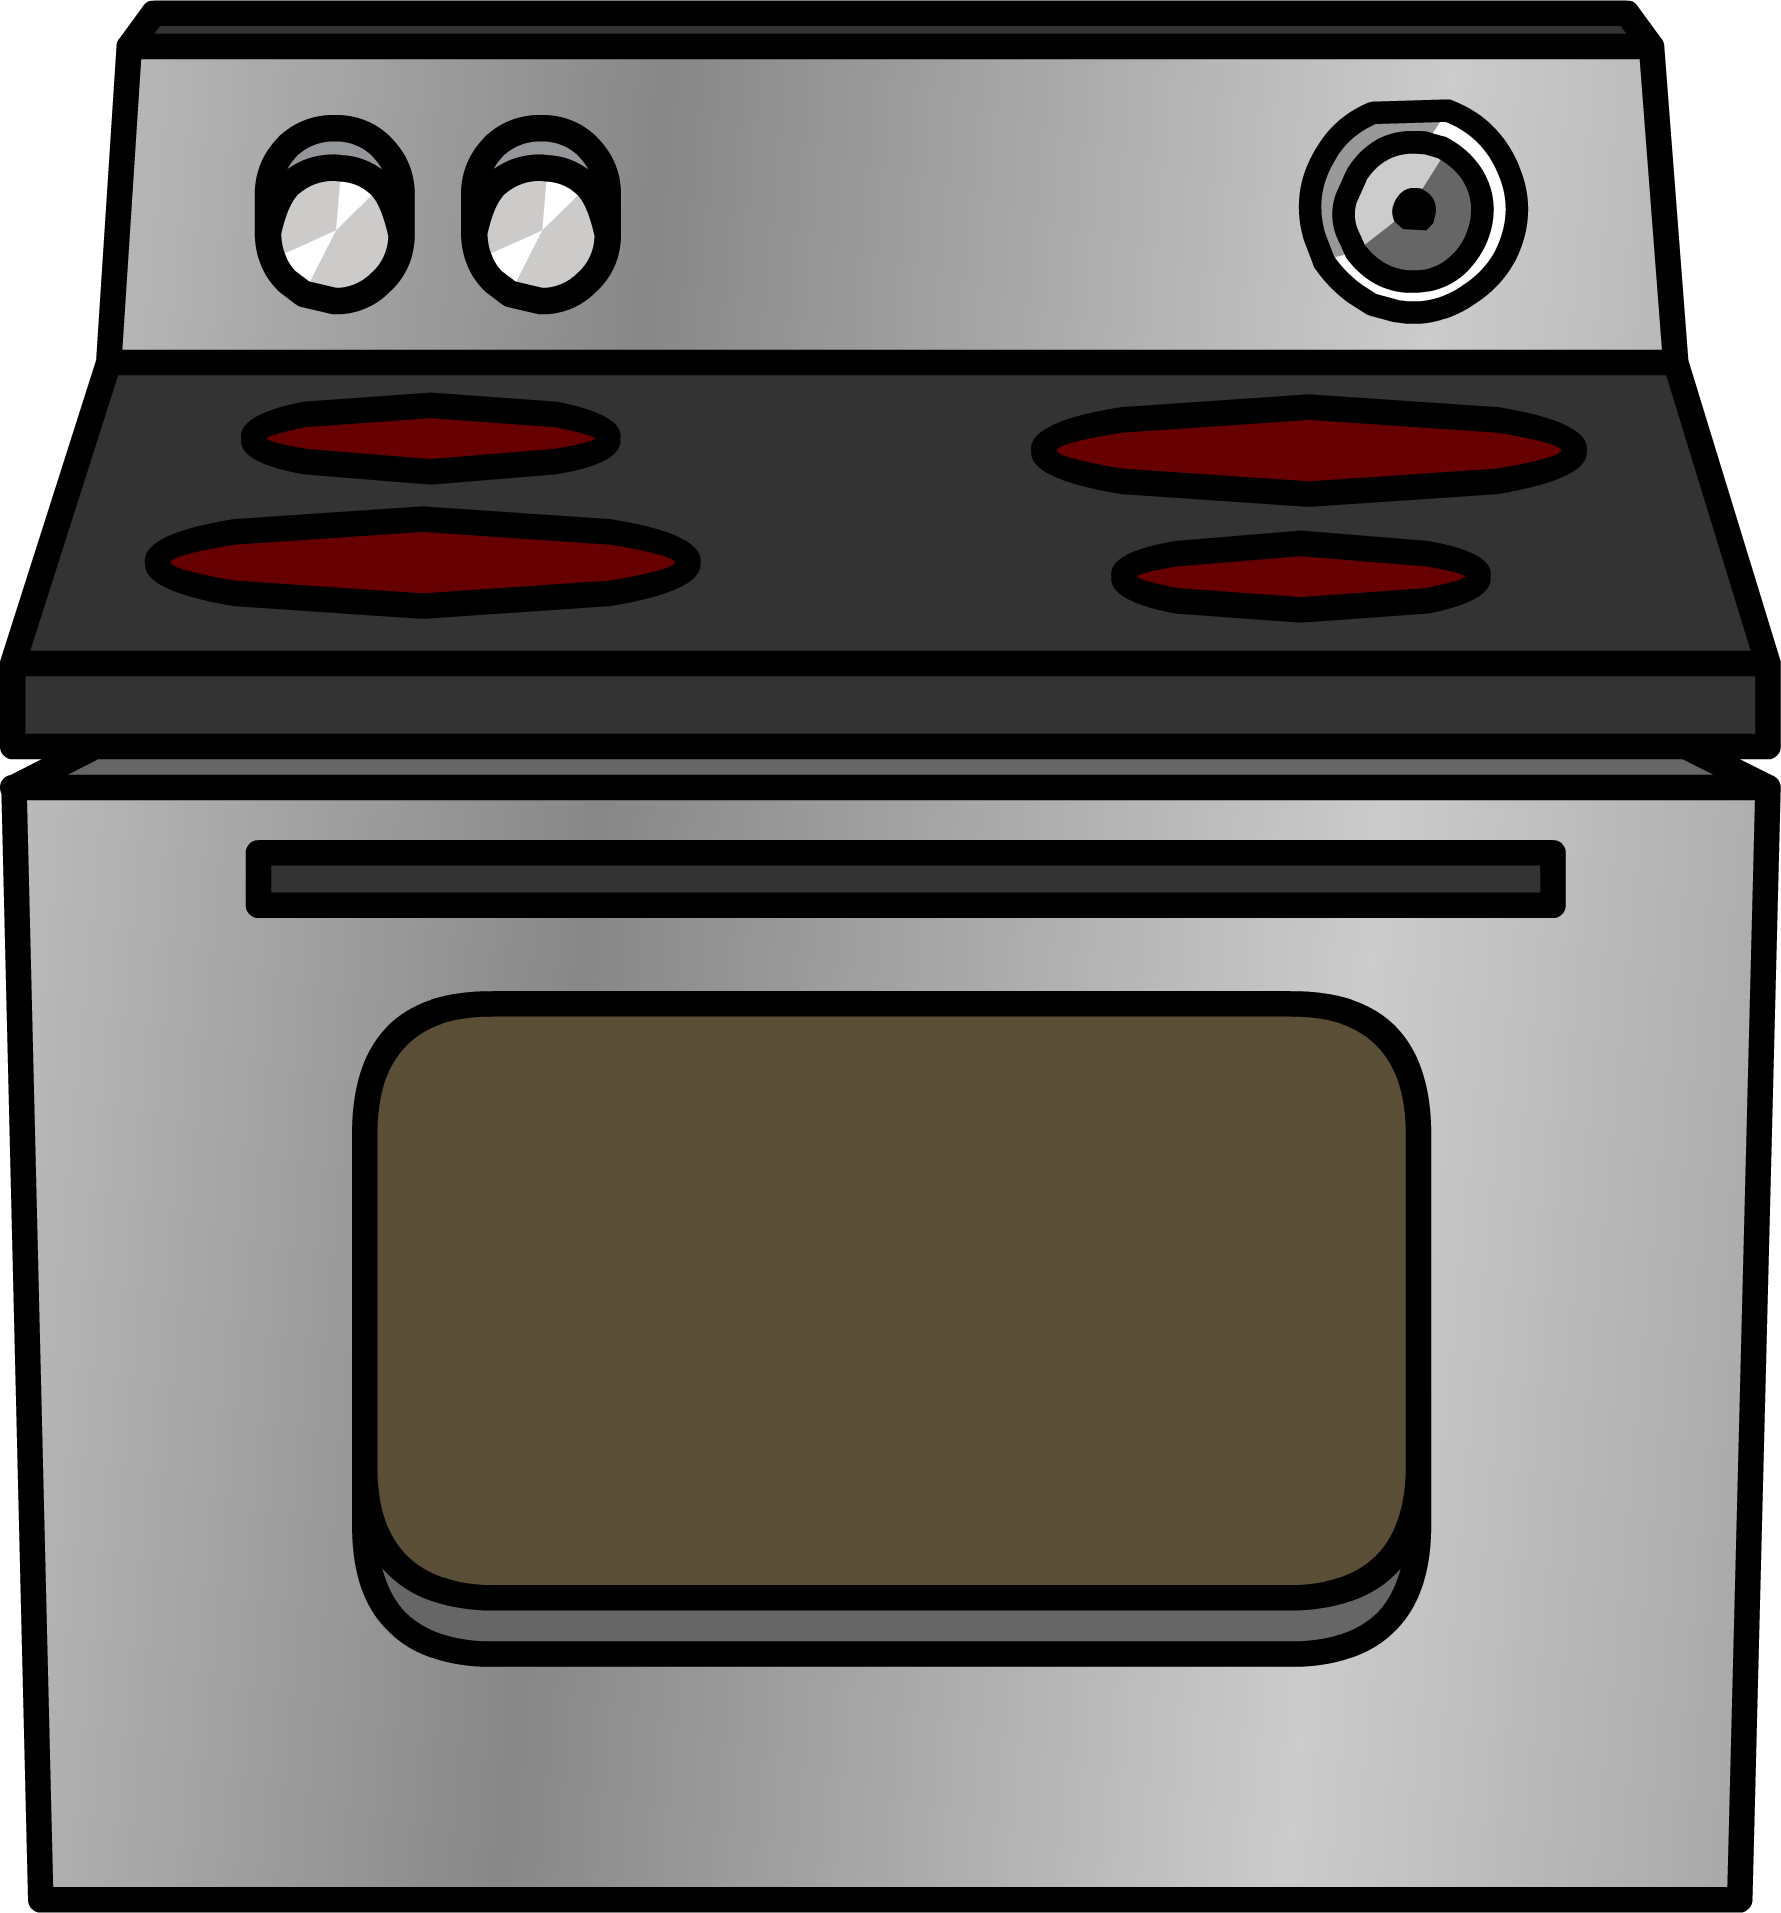 Stainless Steel Stove Club Penguin Wiki Fandom Powered